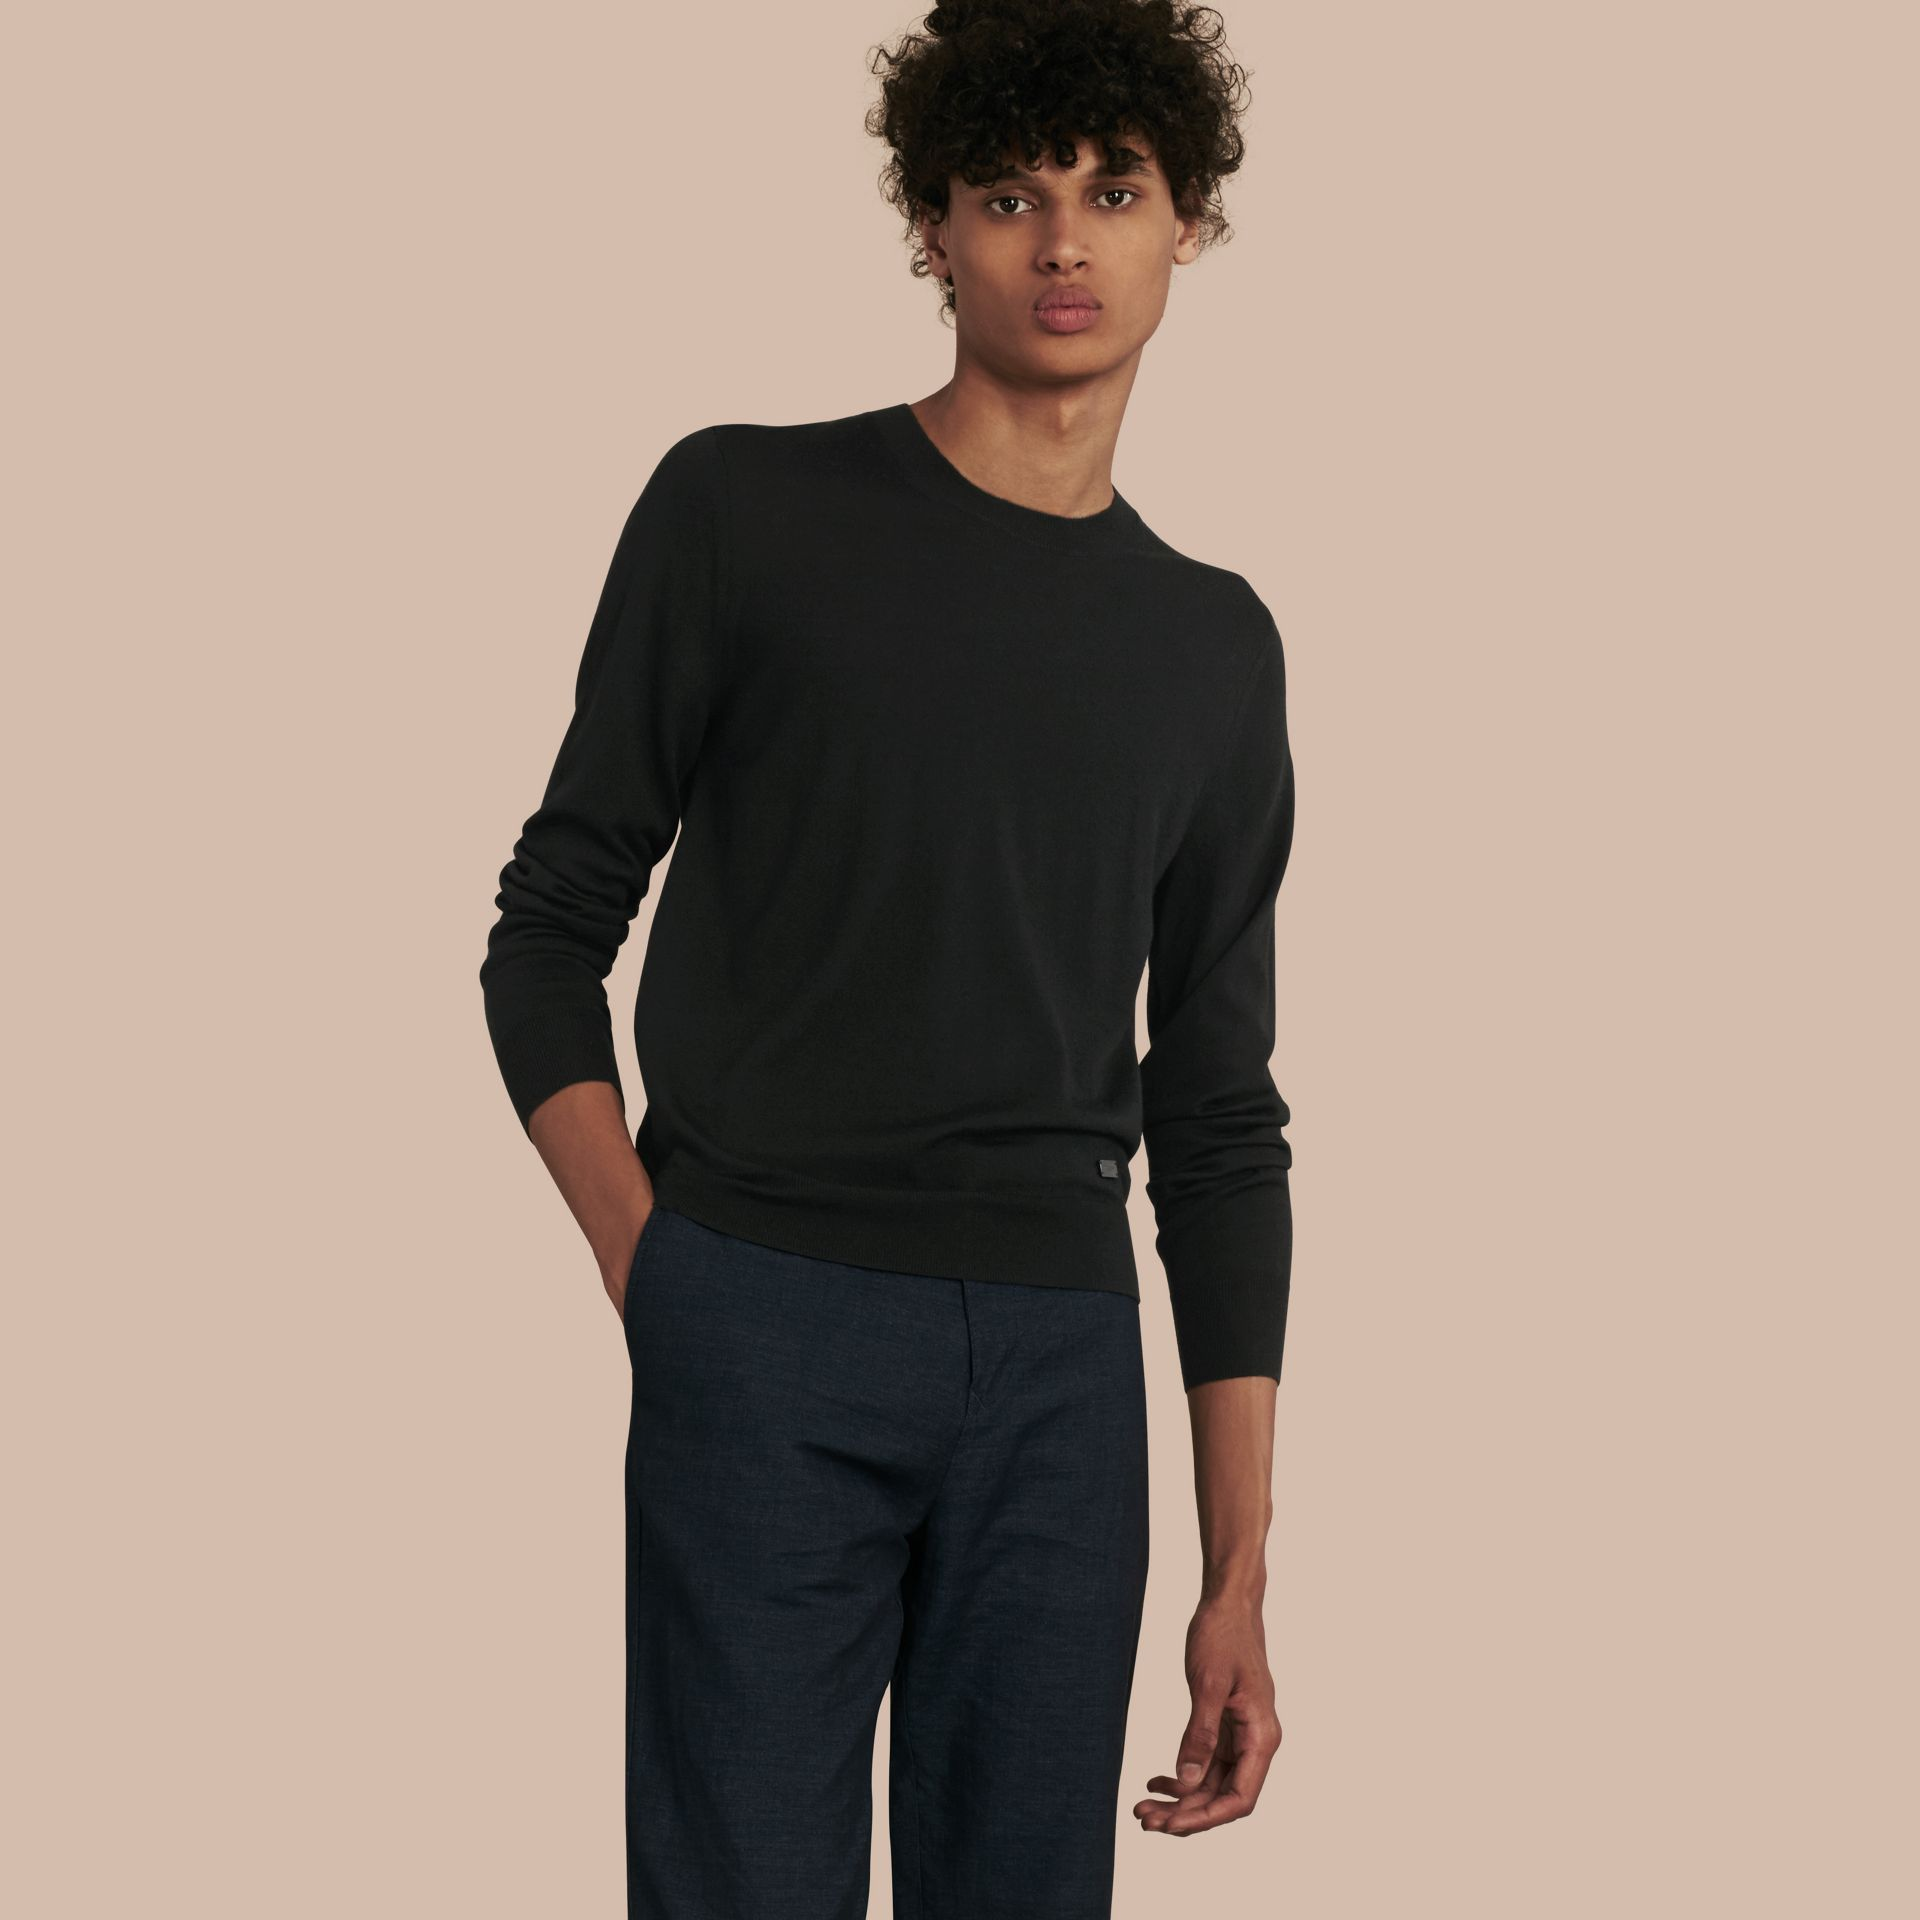 Black Crew Neck Merino Wool Sweater Black - gallery image 1